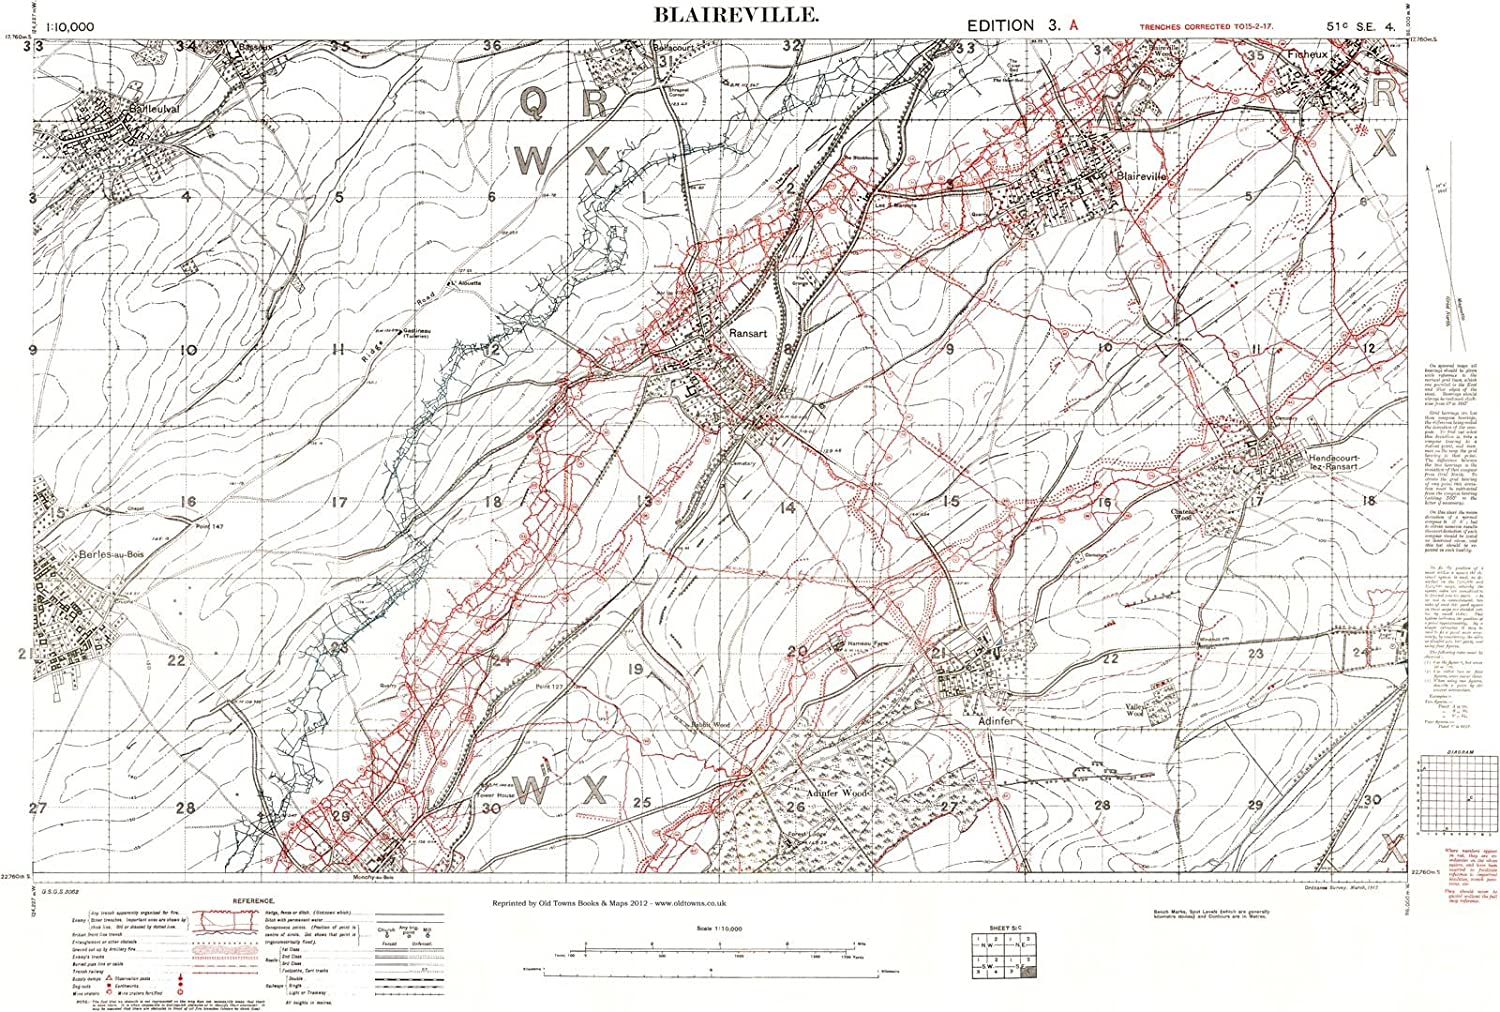 Trench Map WW1, Blaireville, February 1917, 1:10,000 scale ...